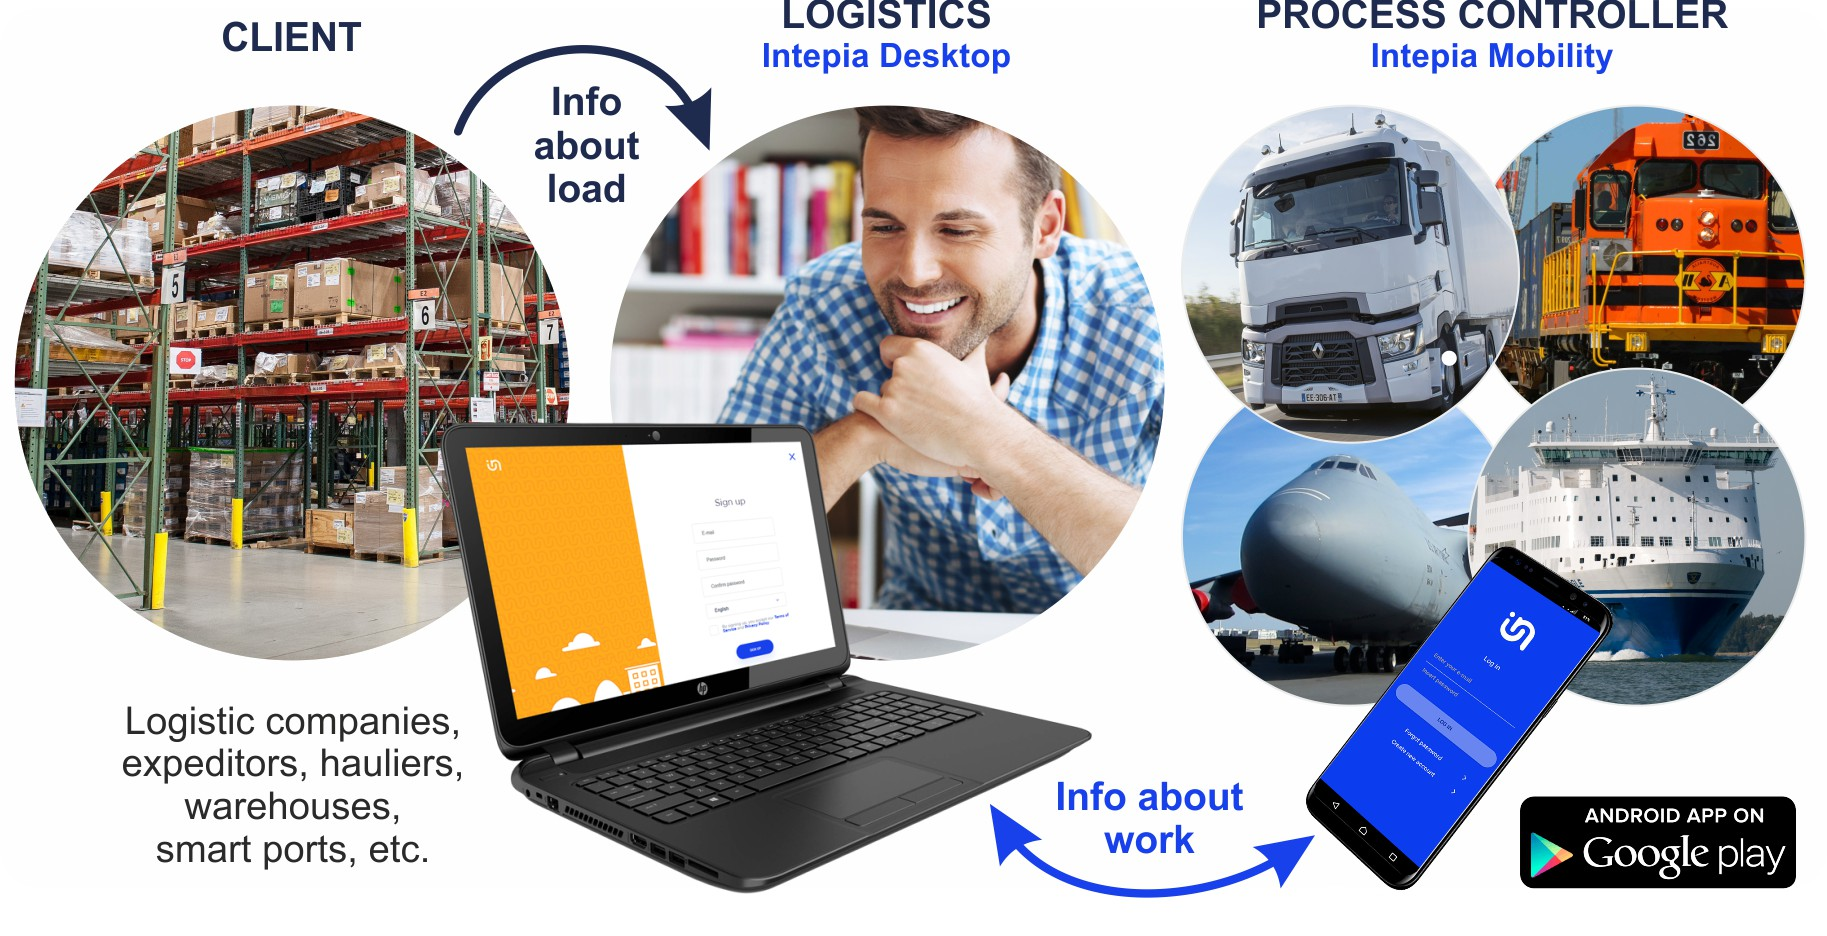 How Intepia desktop and mobility works